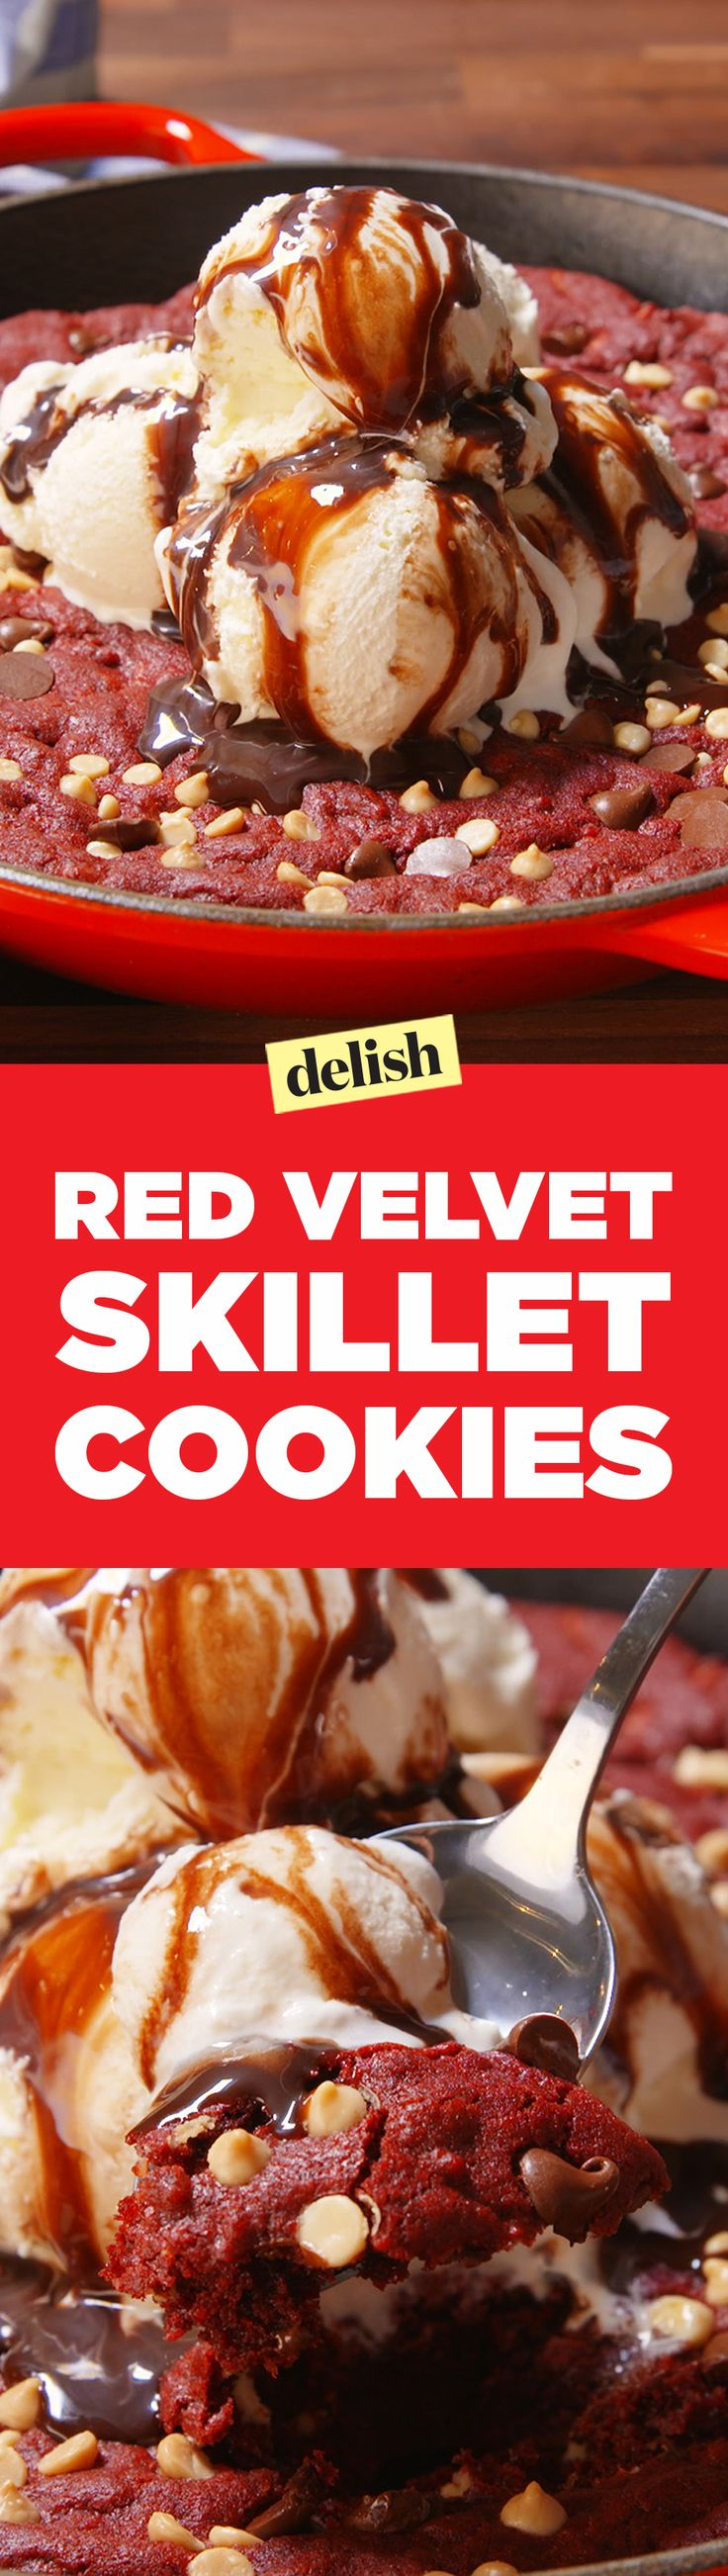 This Red Velvet Skillet Cookie might be better than red velvet cake...you be the judge. Get the recipe on Delish.com.